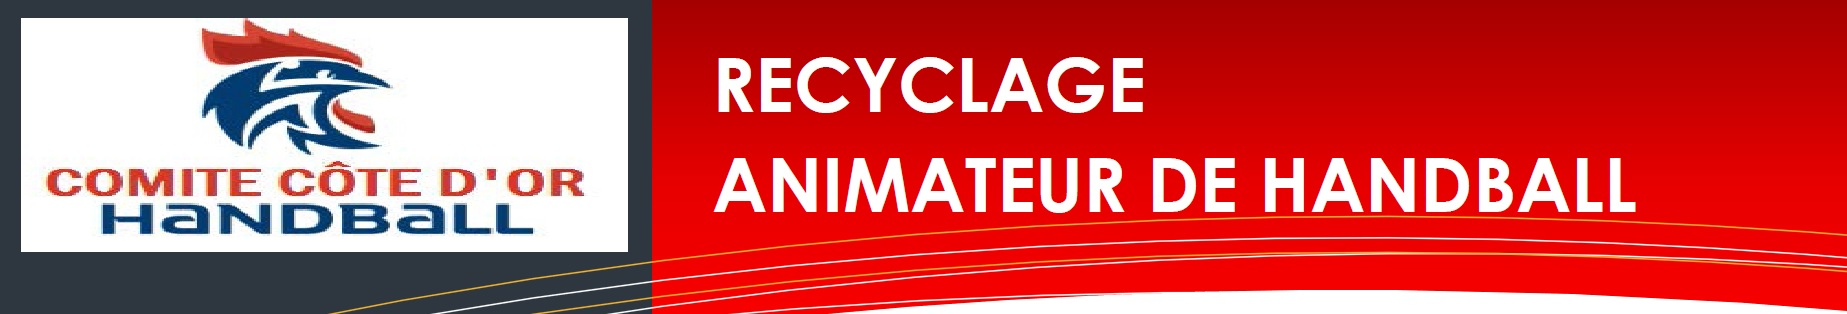 Recyclage animateur hb